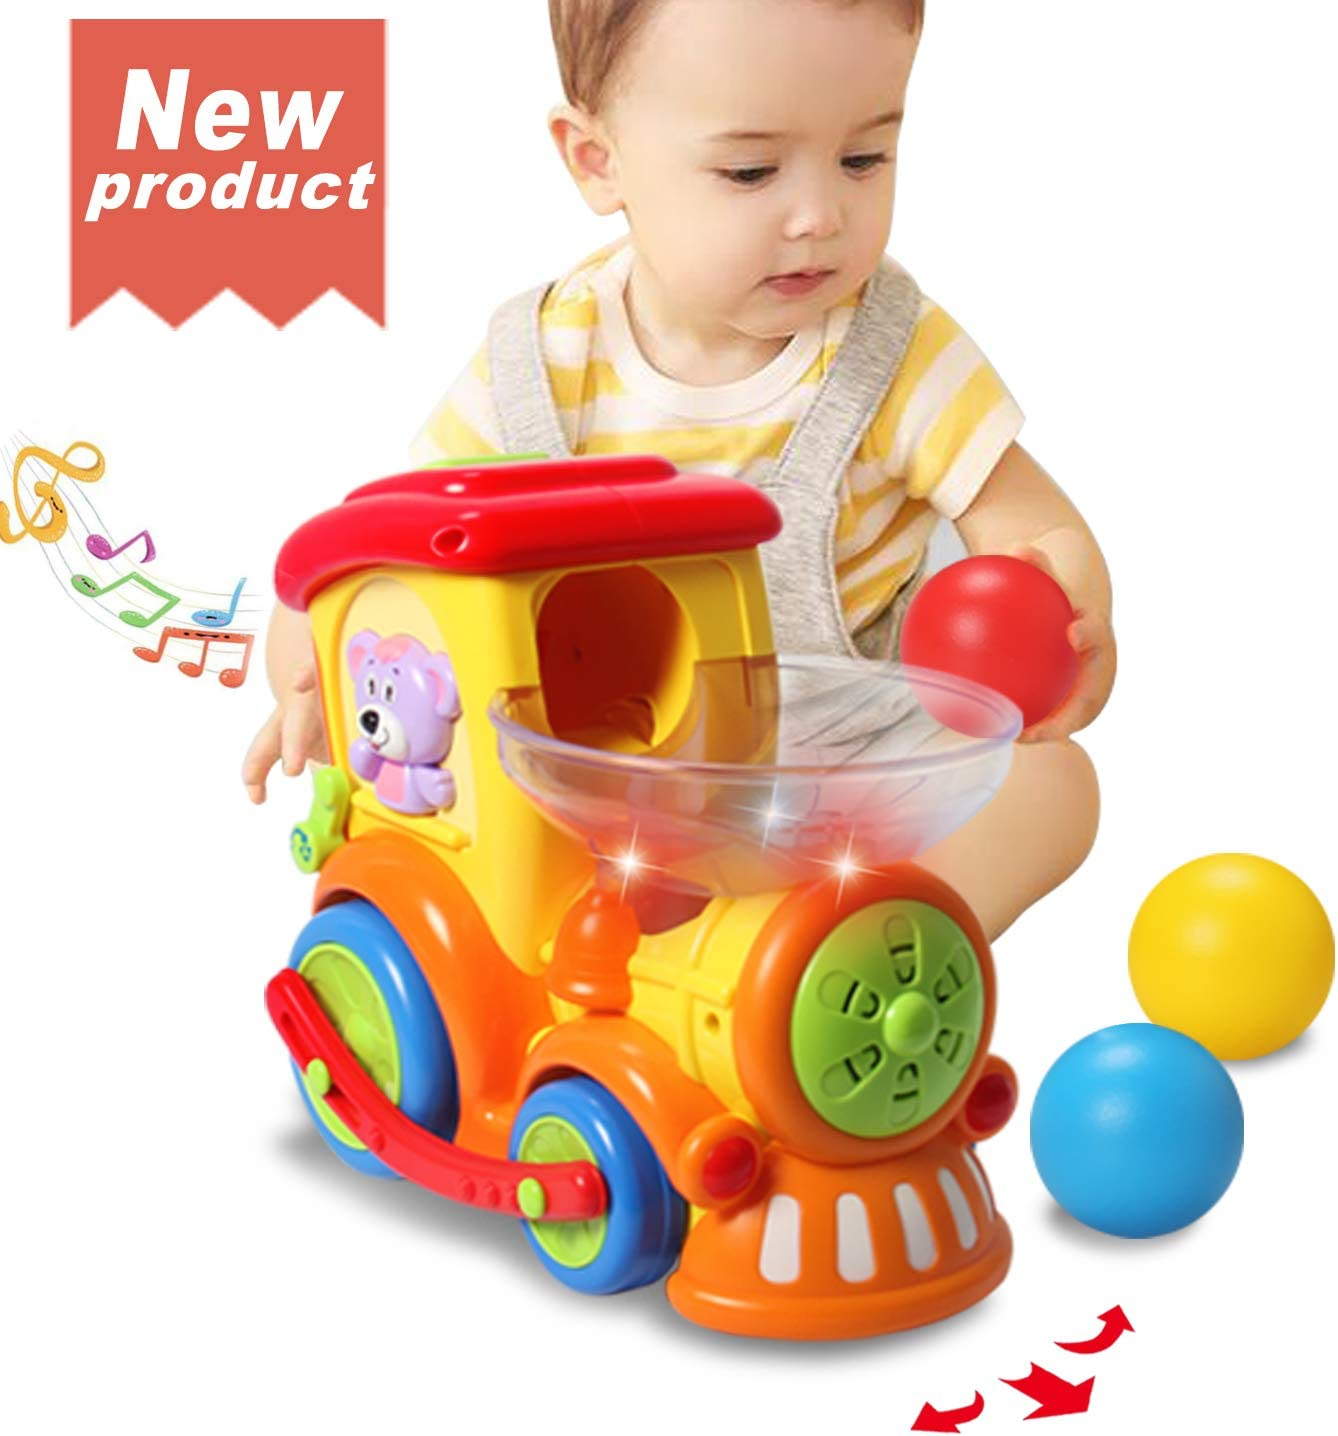 Baby Toddler Wind Up Musical TV Activity Toy 12 Months